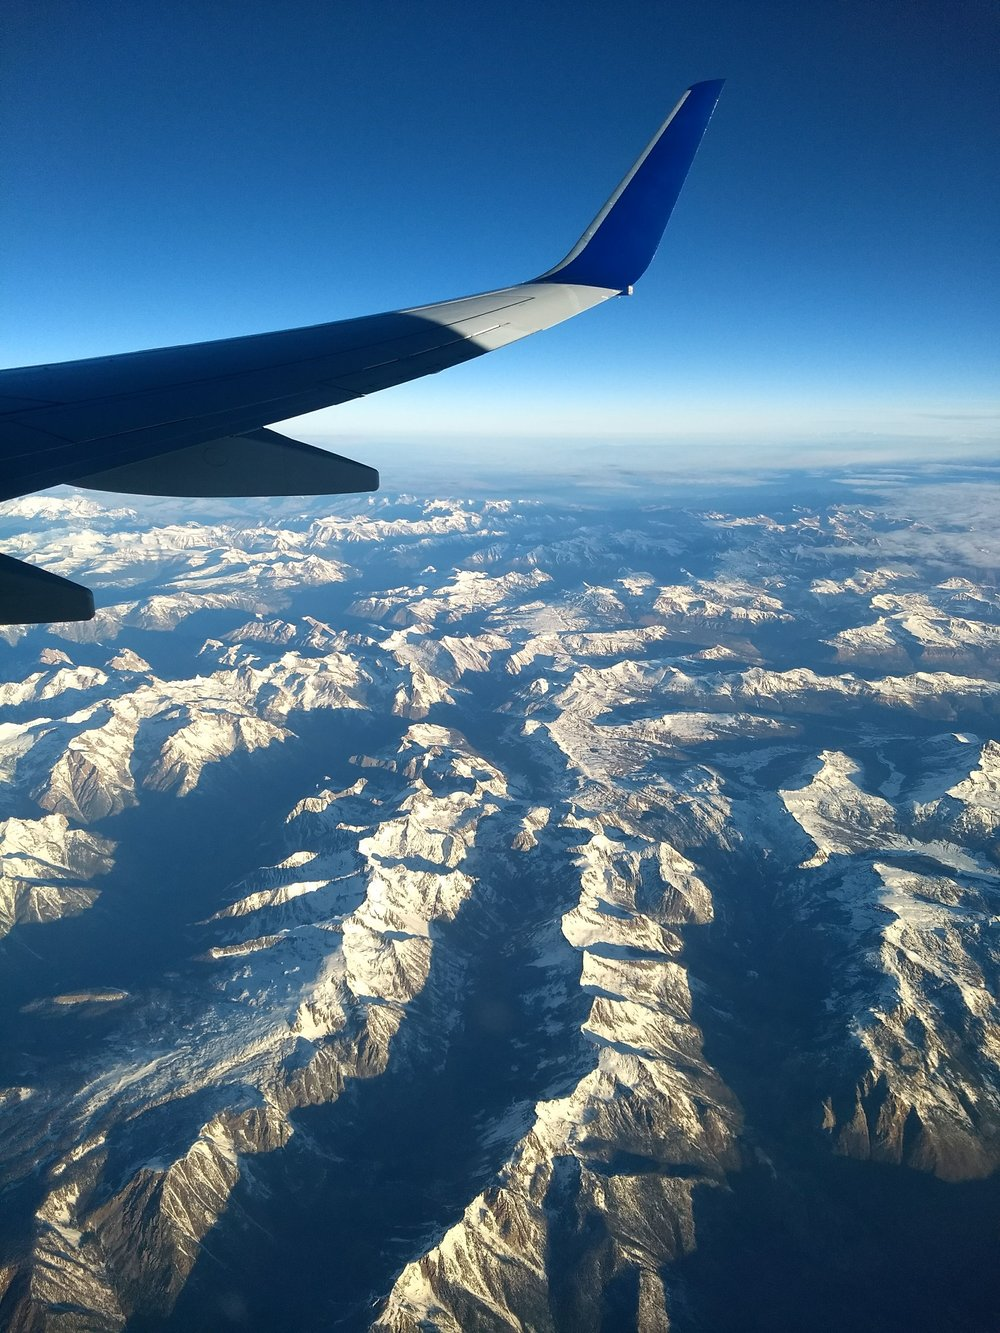 Some mountains from when we were flying over Colorado